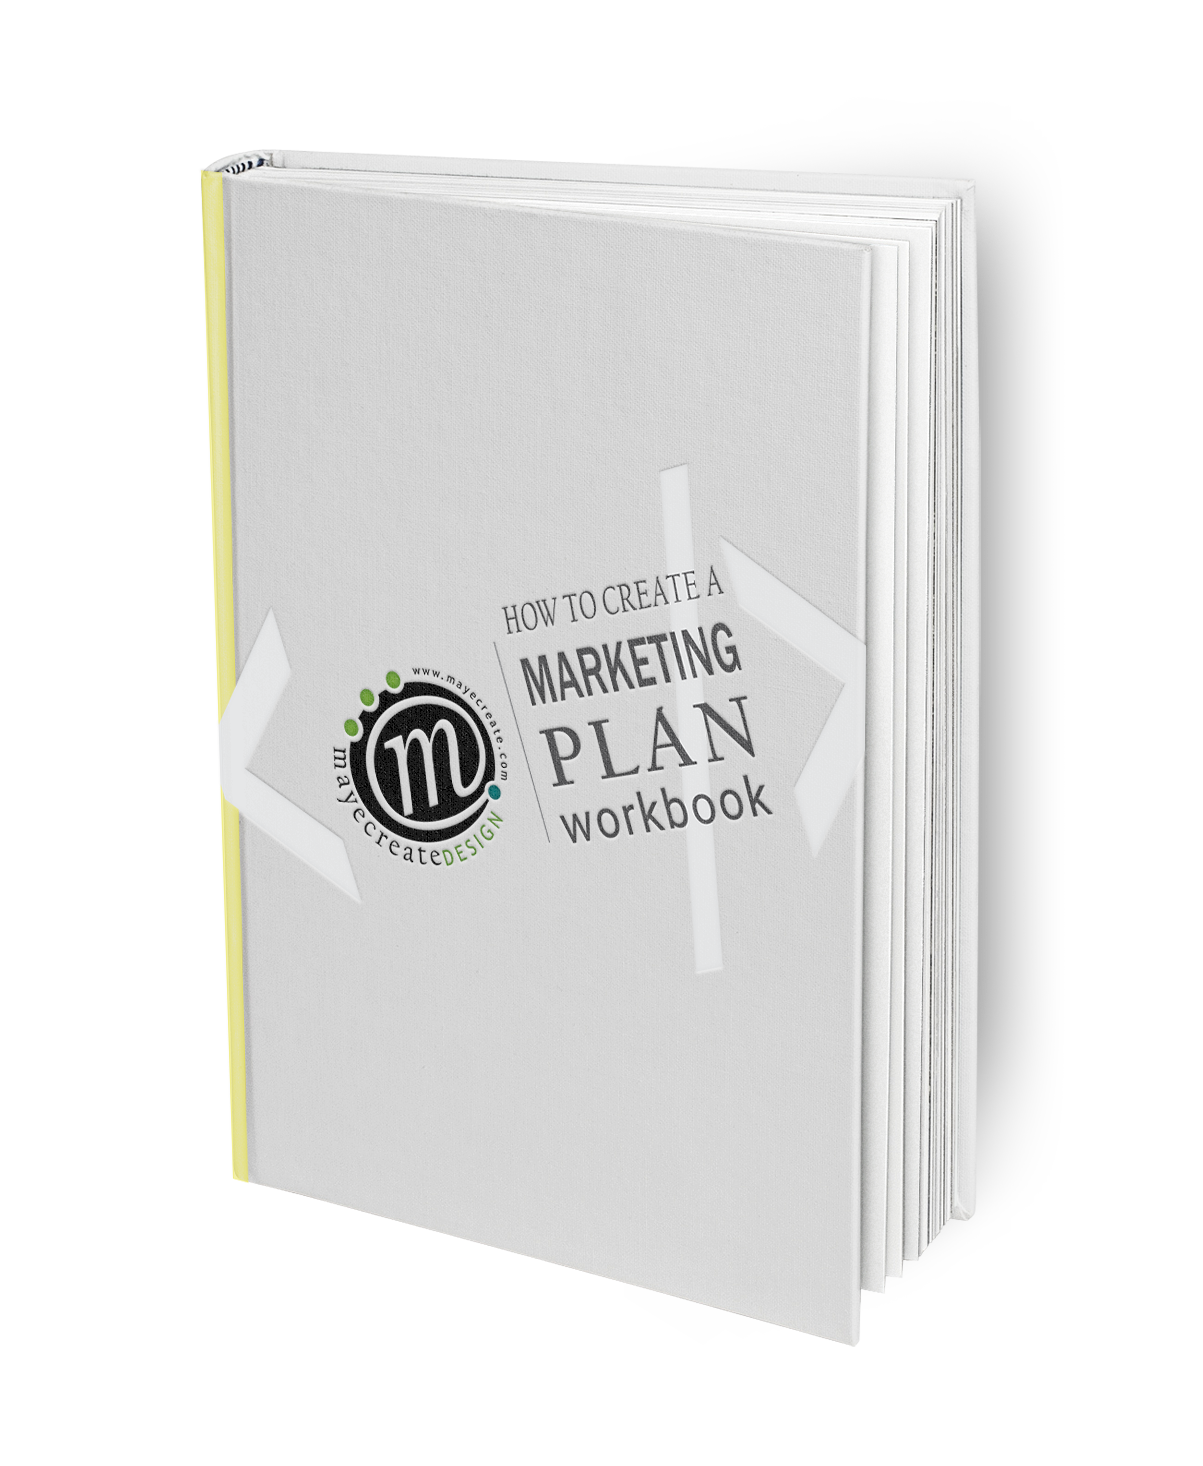 How to Create a Marketing Plan Workbook